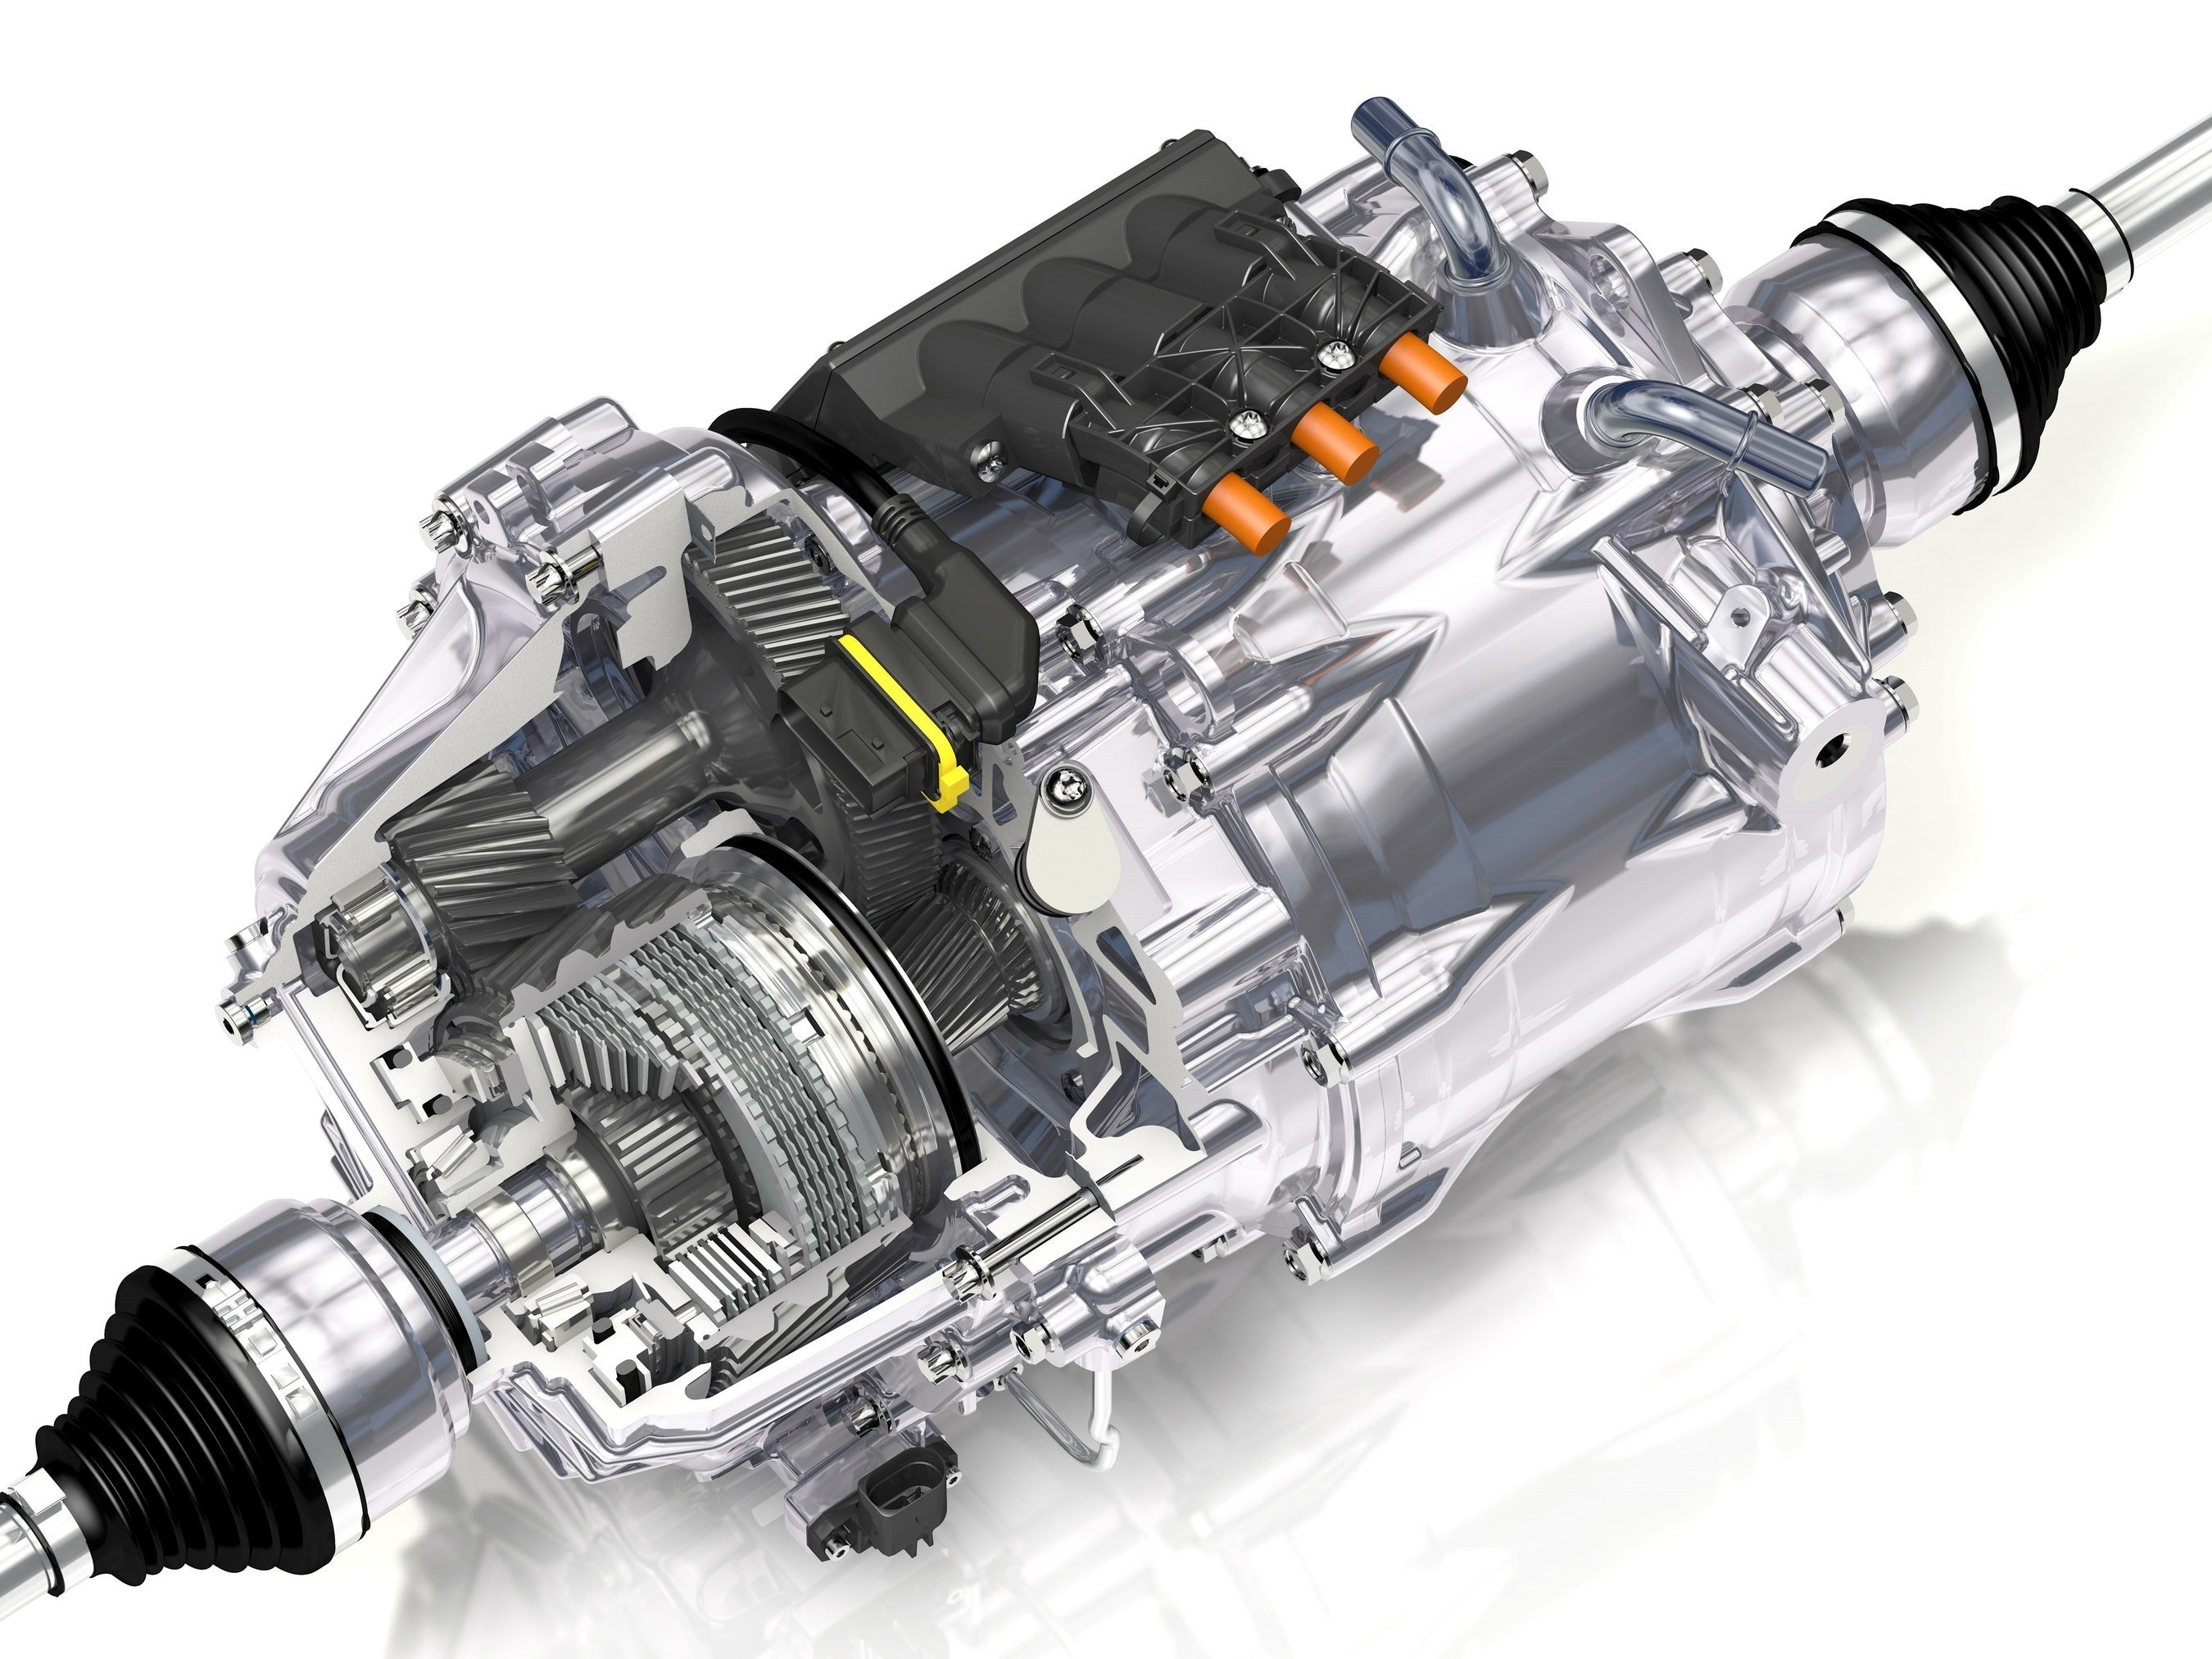 GKN Automotive showcased its new eTwinsterR torque-vectoring electric drivesystem for hybrid vehicles at its Wintertest proving ground in Arjeplog,Northern Sweden this week. The eTwinster plug-in module makes it simpler forautomakers to offer electric all-wheel drive and torque vectoring in hybridvehicles.